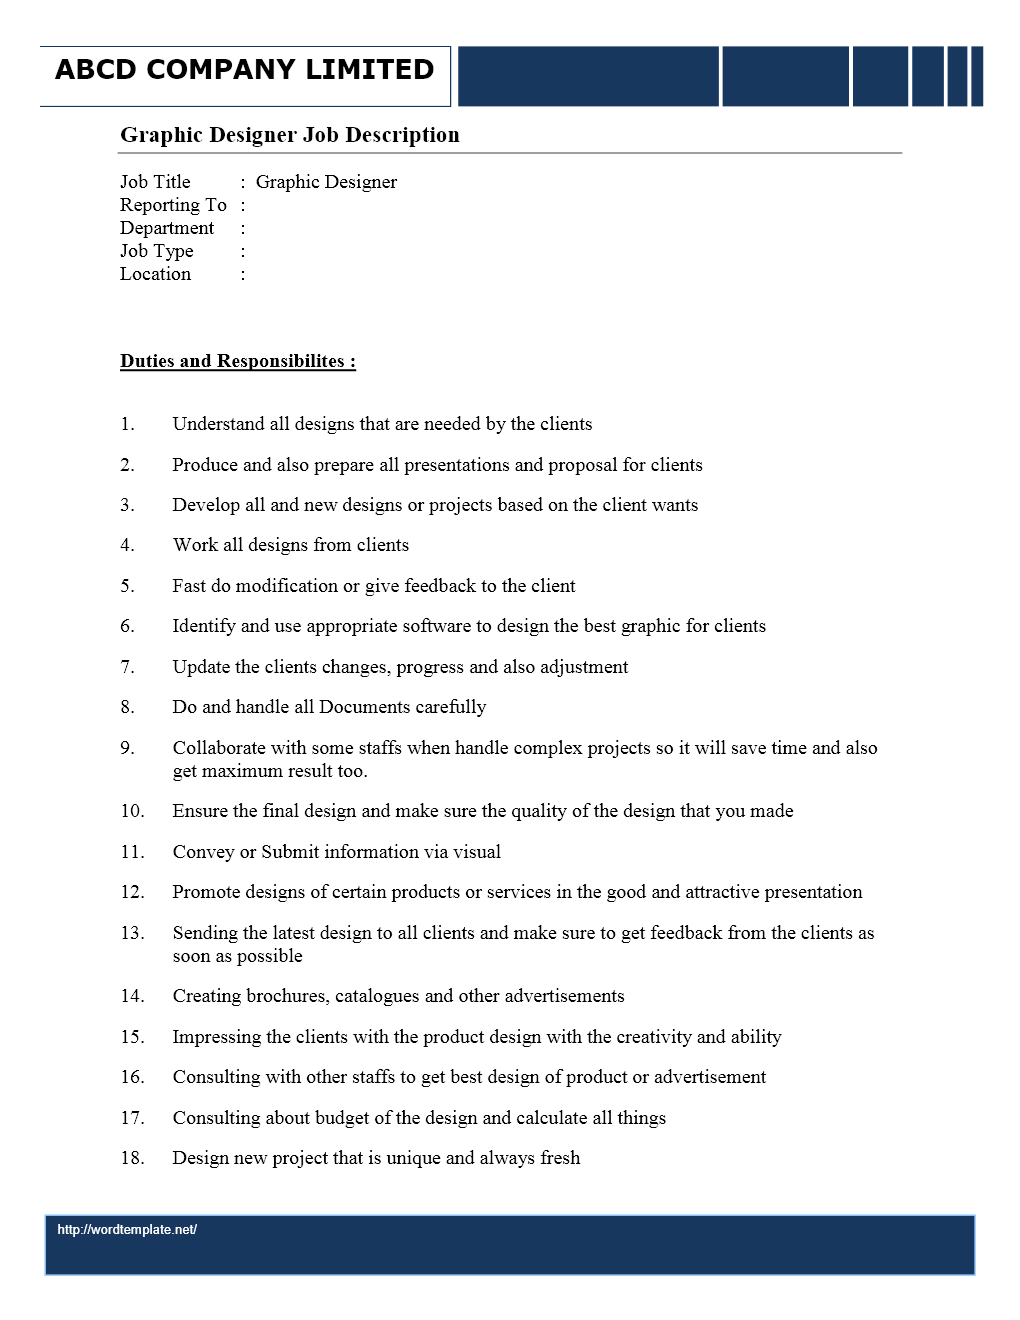 lance graphic designer job description template lance graphic designer job description